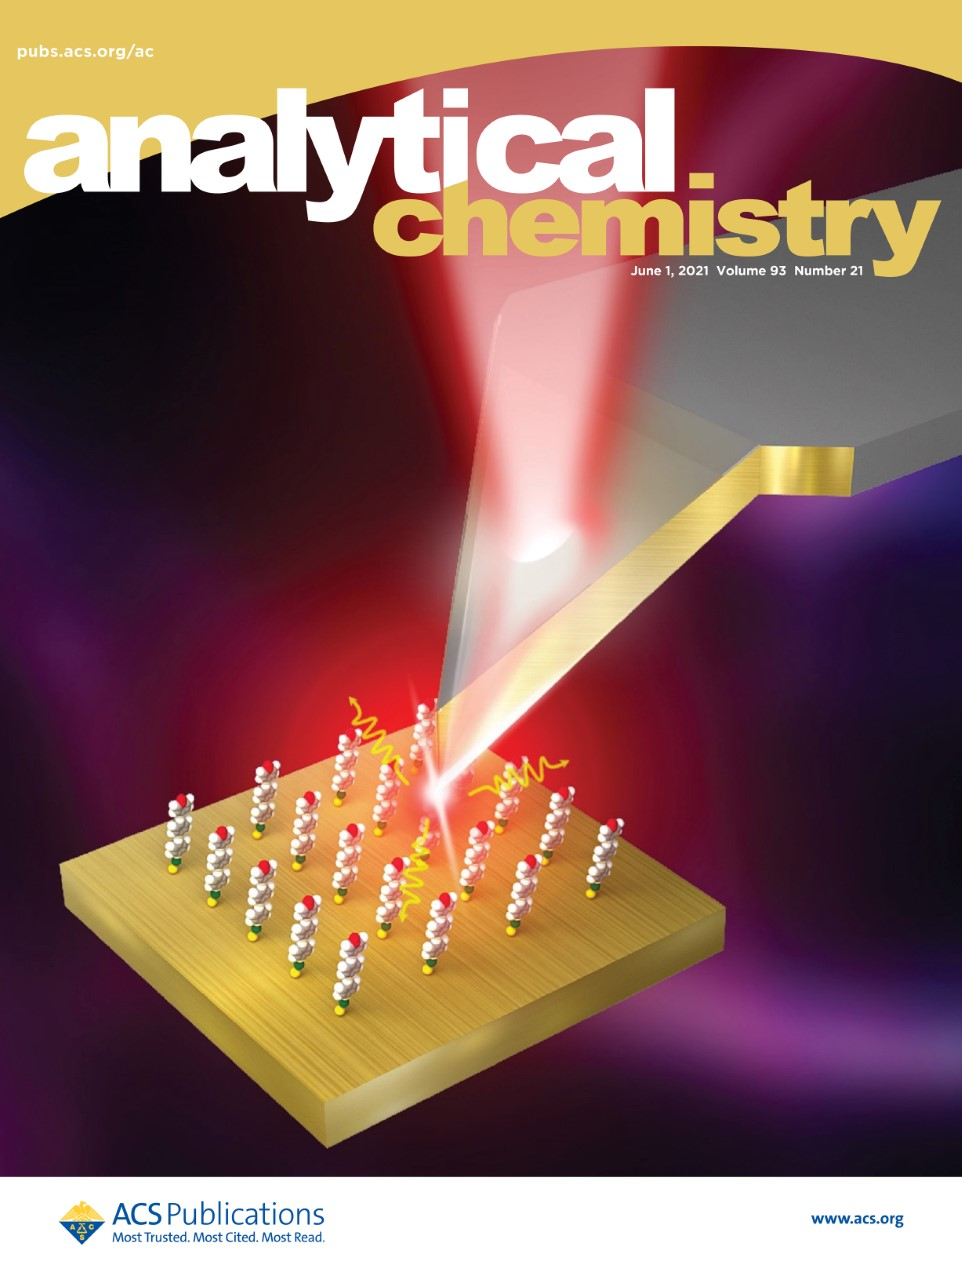 Analytical. Chemistryに論文が掲載され、Supplementary Coverとして選出されました。(題目:Low-Background Tip-Enhanced Raman Spectroscopy Enabled by a Plasmon Thin-Film Waveguide Probe)